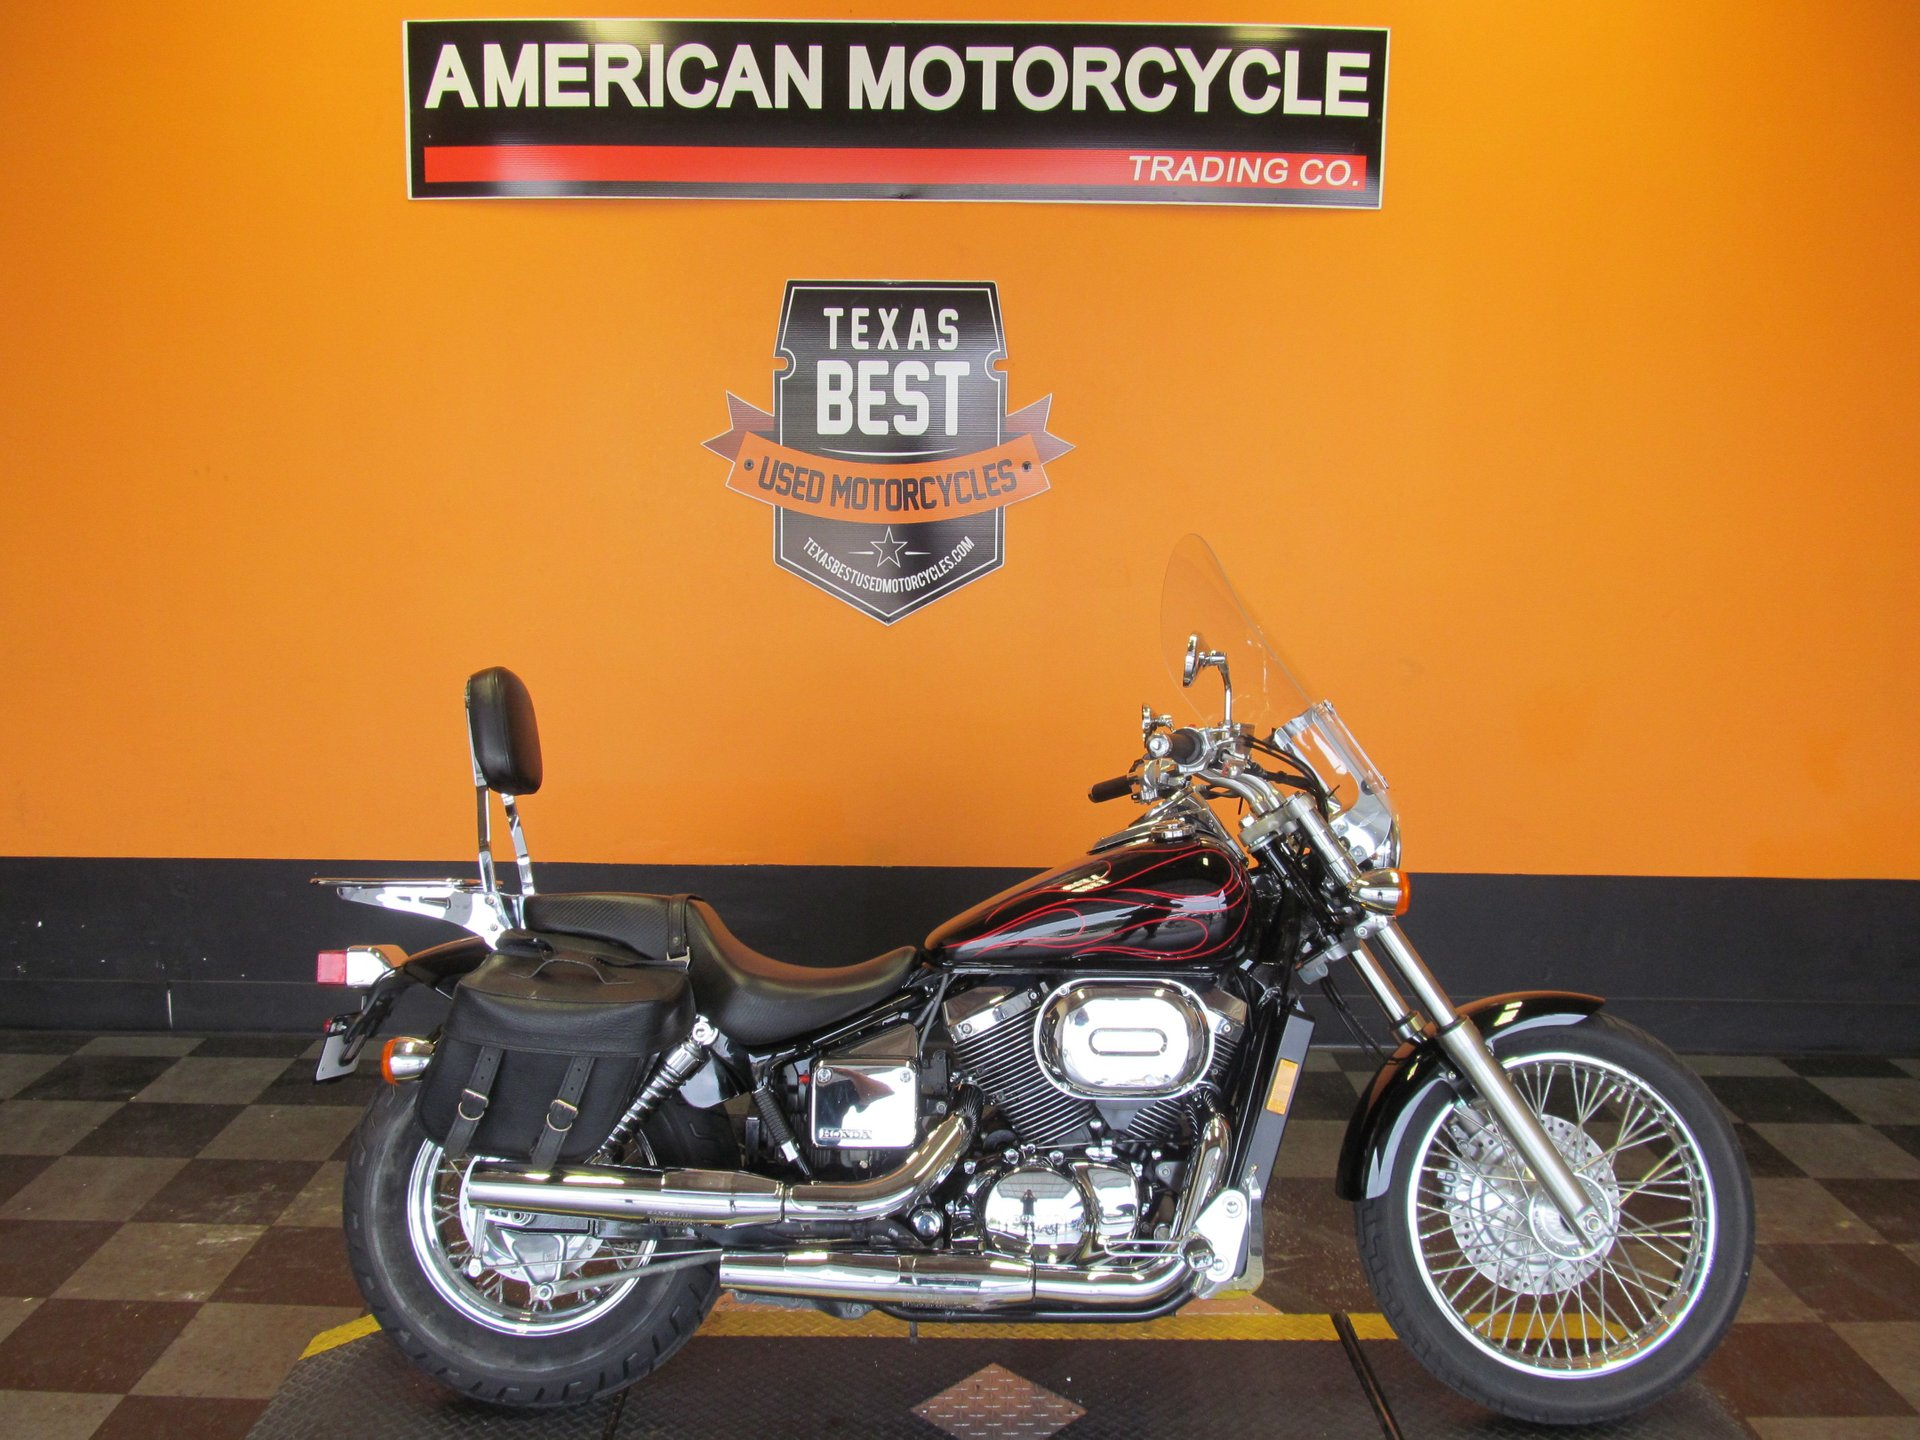 2007 honda shadow spirit vt750dcb